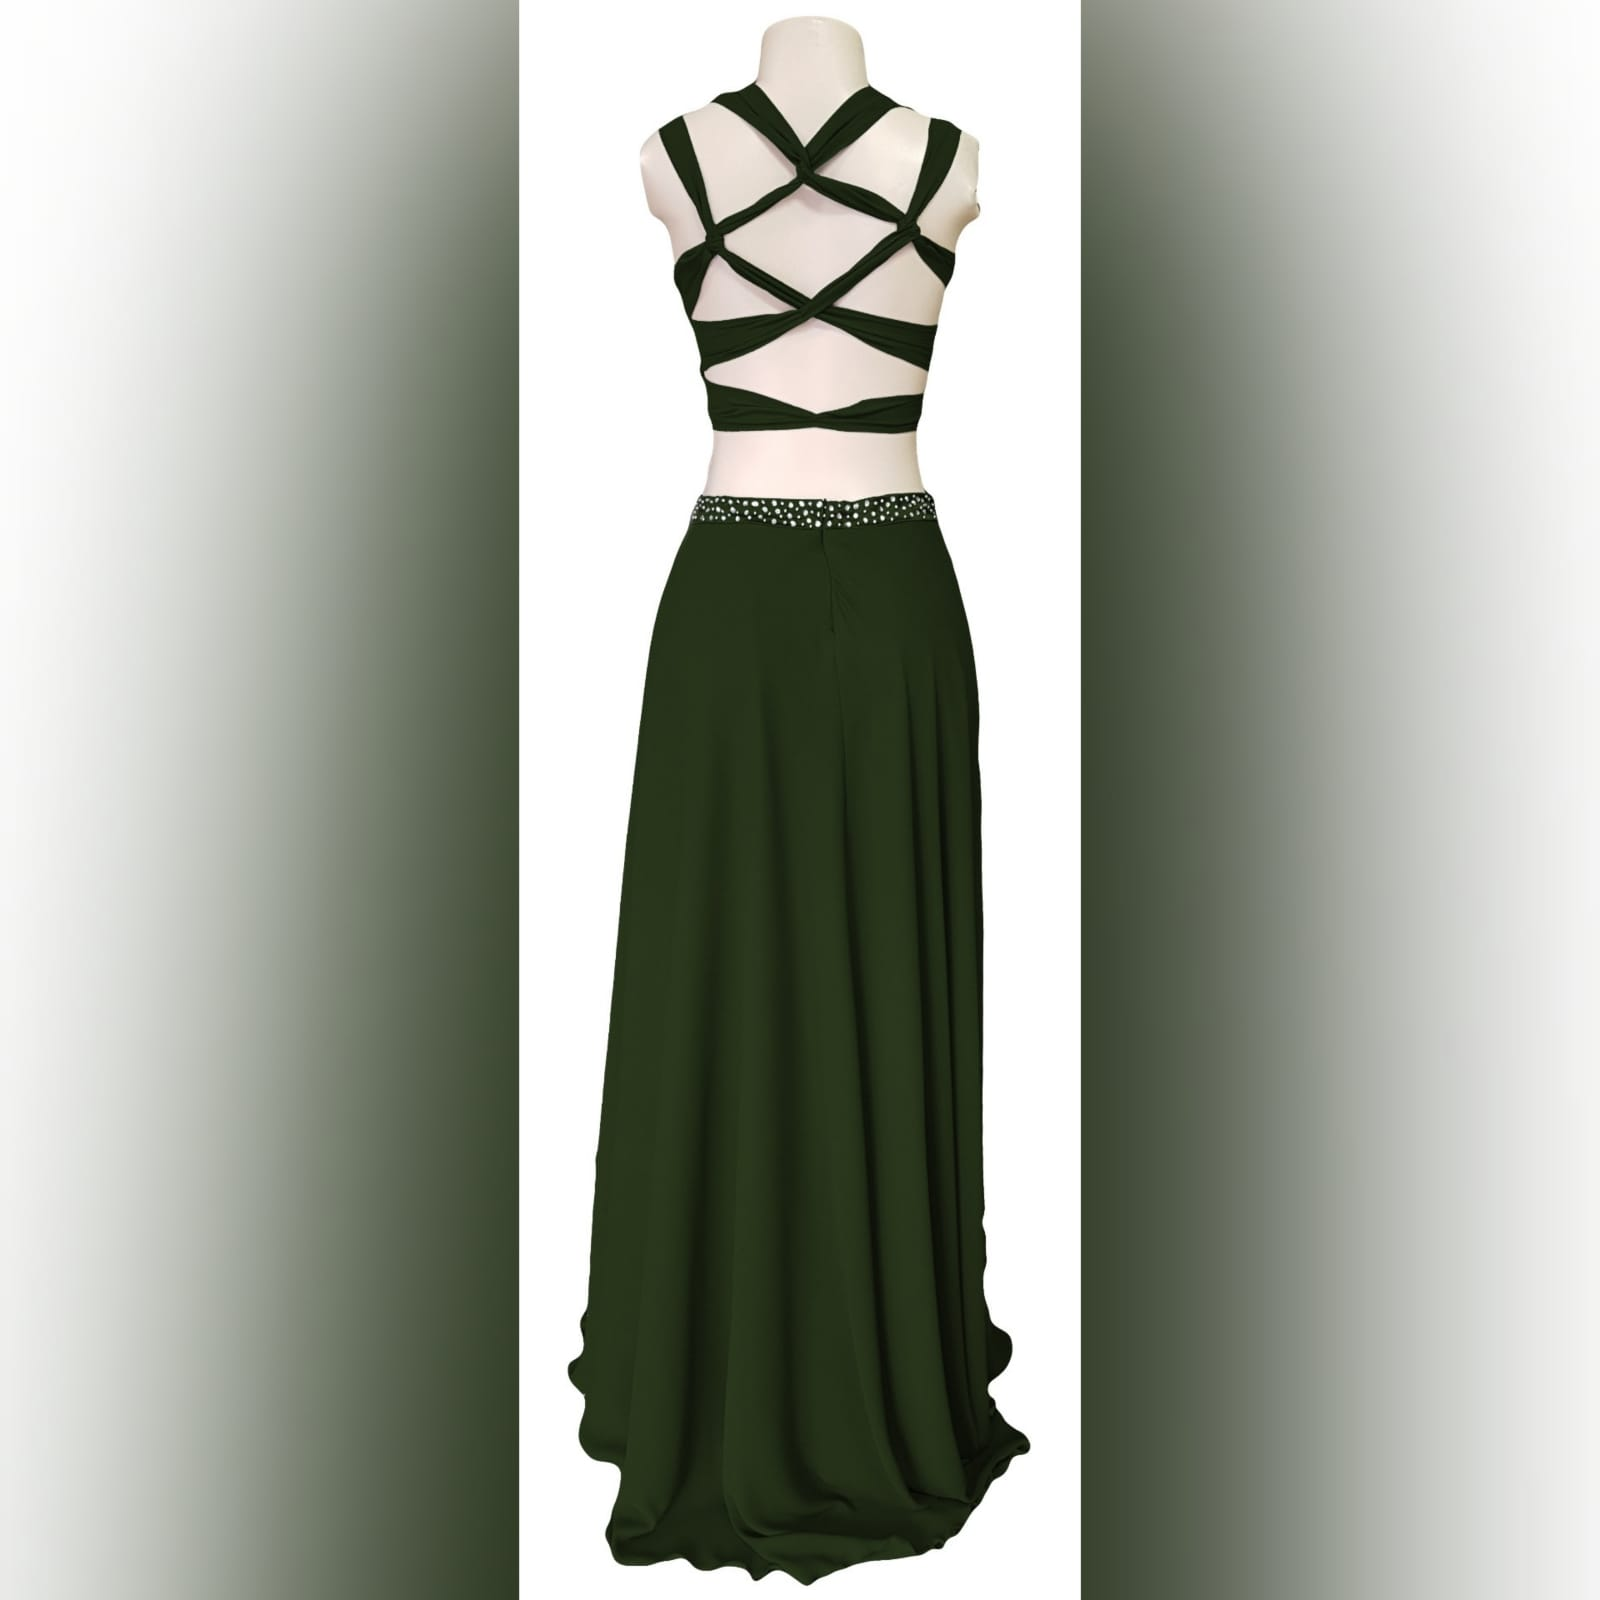 Olive green 2 piece prom dress 4 olive green 2 piece prom dress. Flowy long chiffon shirt with a little train and waistband detailed with silver beads. Pleated crop top with a rounded deep neckline , backless design with strap detail.